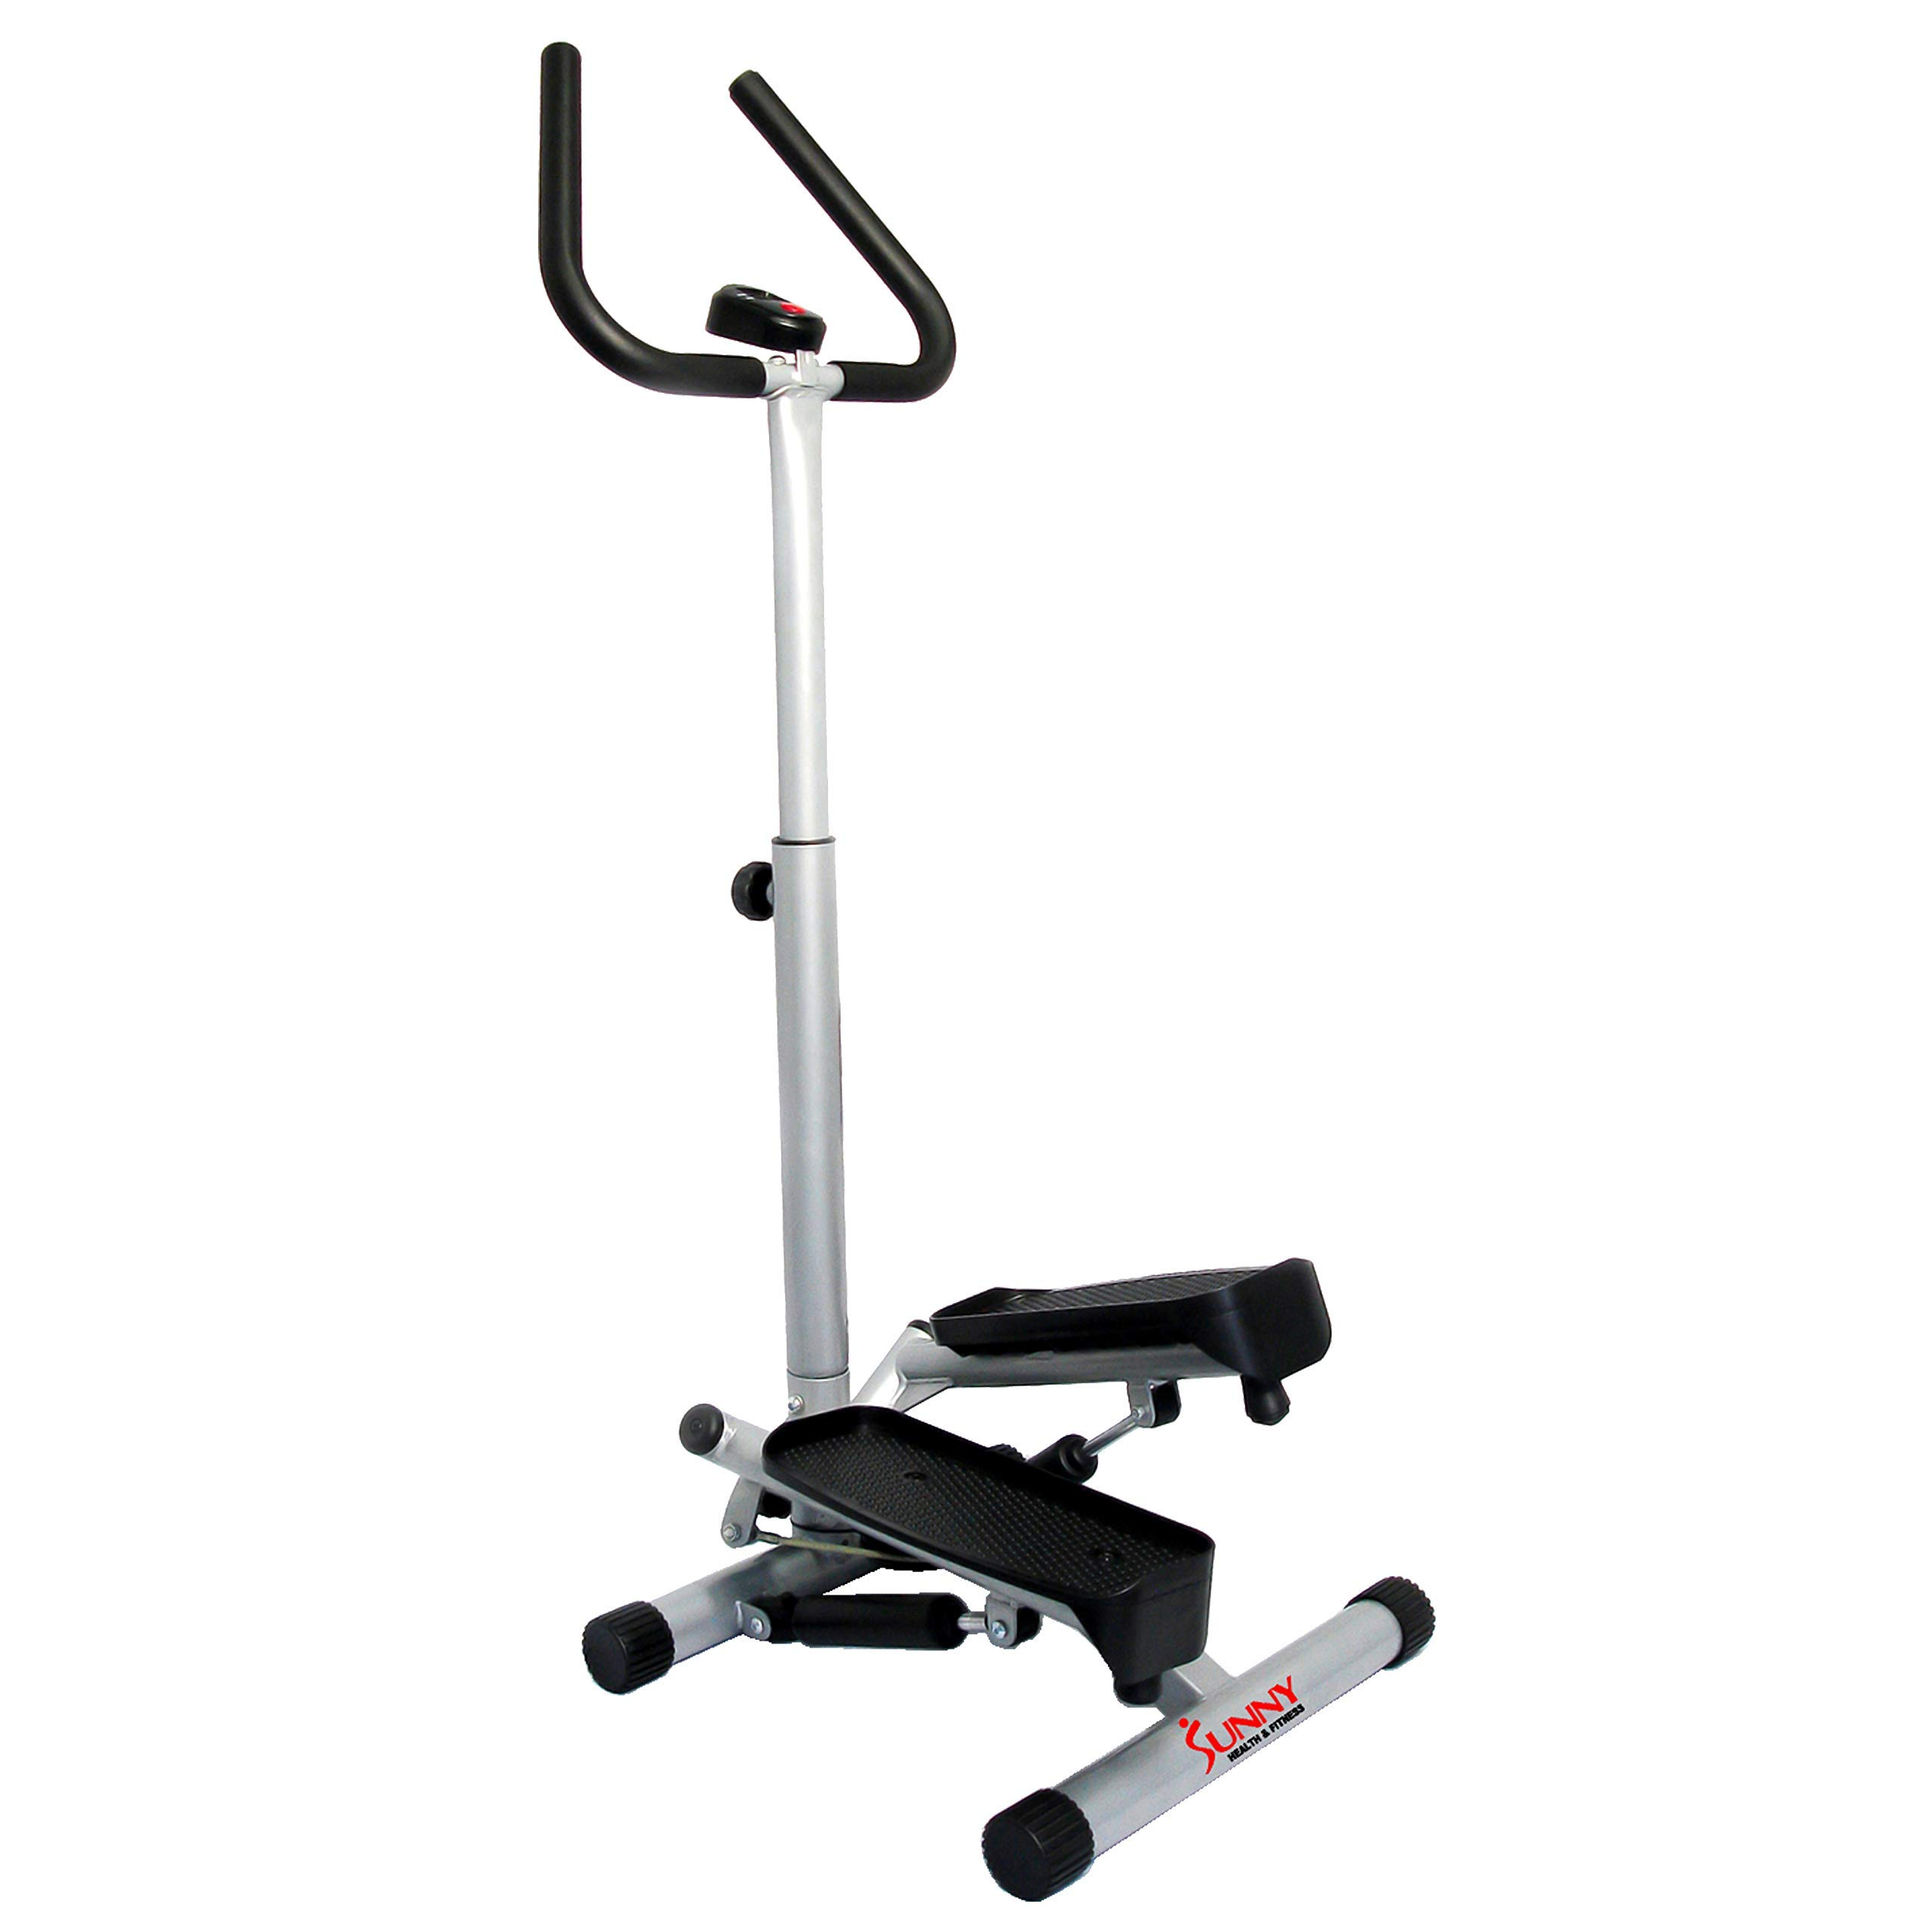 Sunny Health & Fitness NO. 059 Twist Stepper Step Machine w/Handle Bar and LCD Monitor (Renewed) by Sunny Health & Fitness (Image #1)